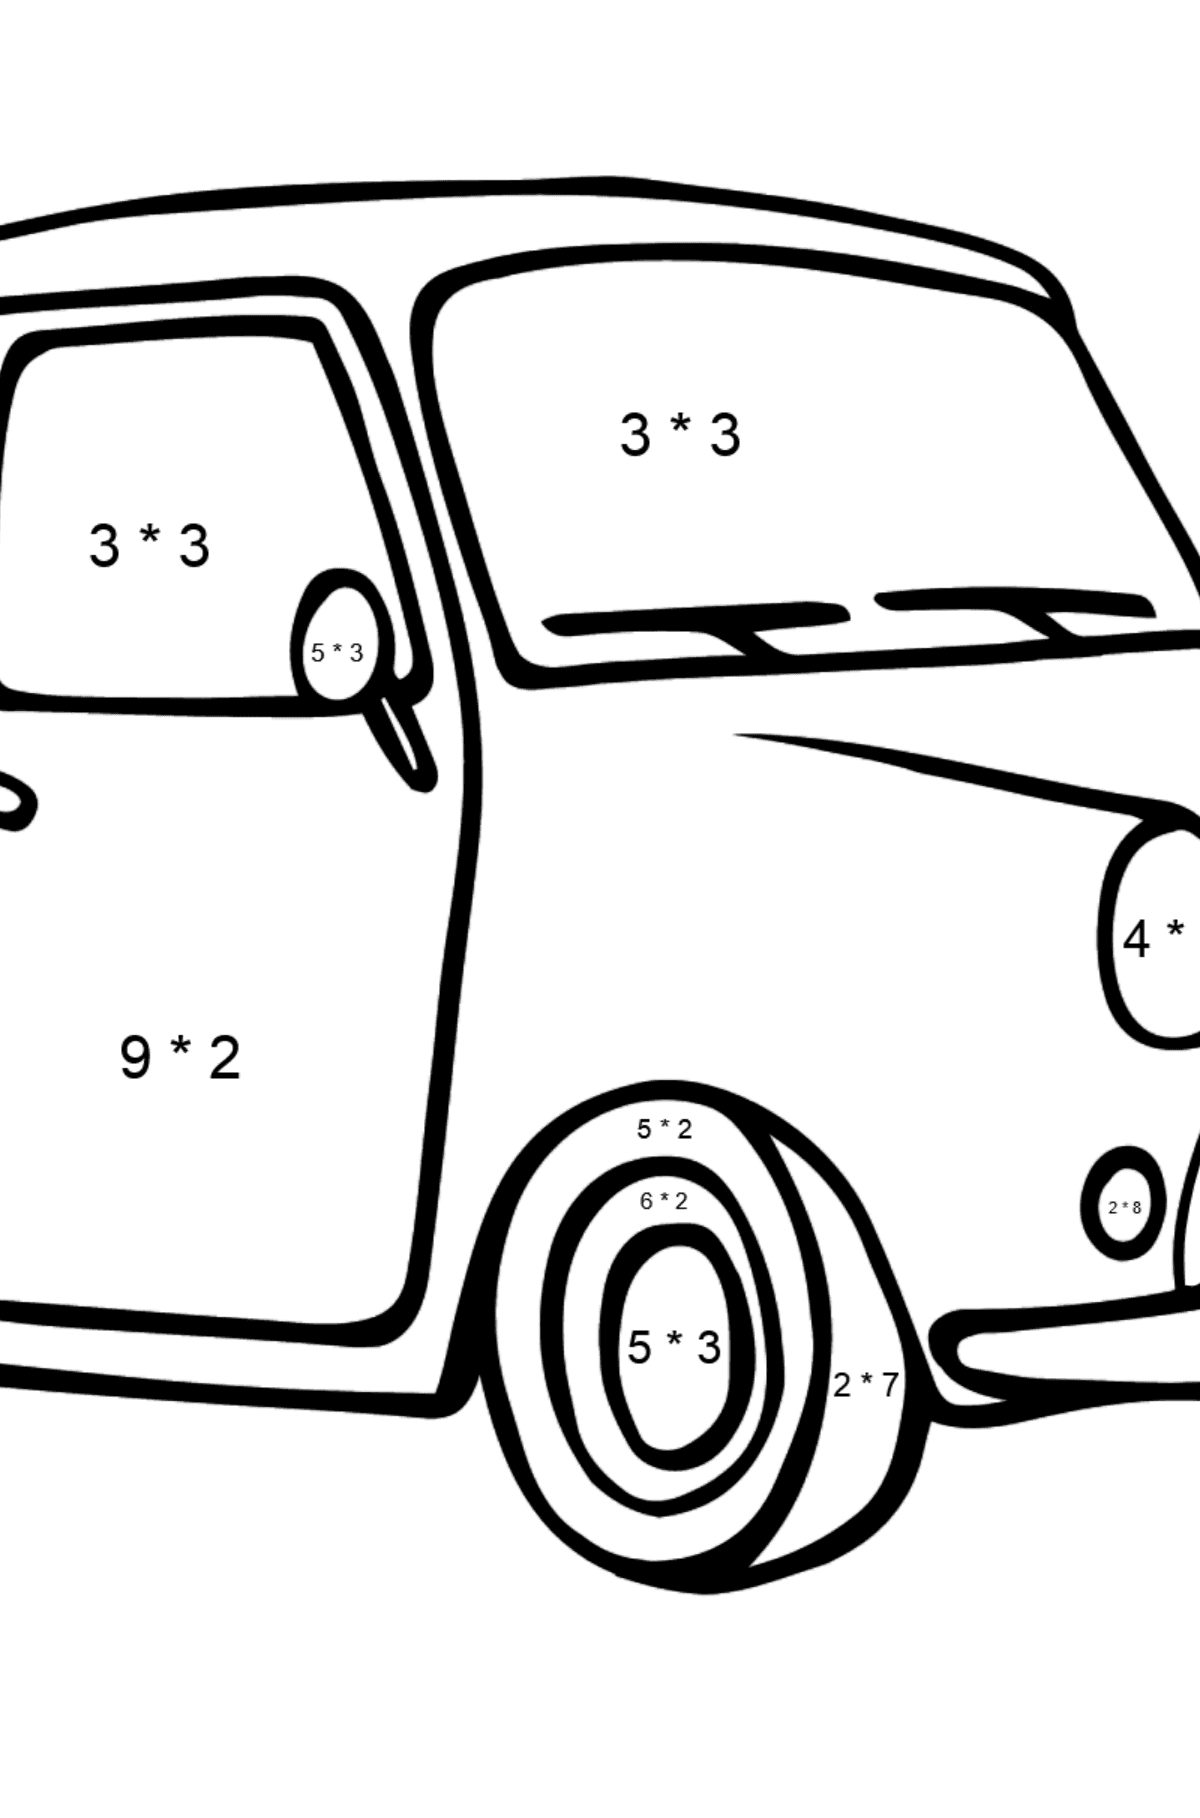 Fiat 500 coloring page (green car) - Math Coloring - Multiplication for Kids